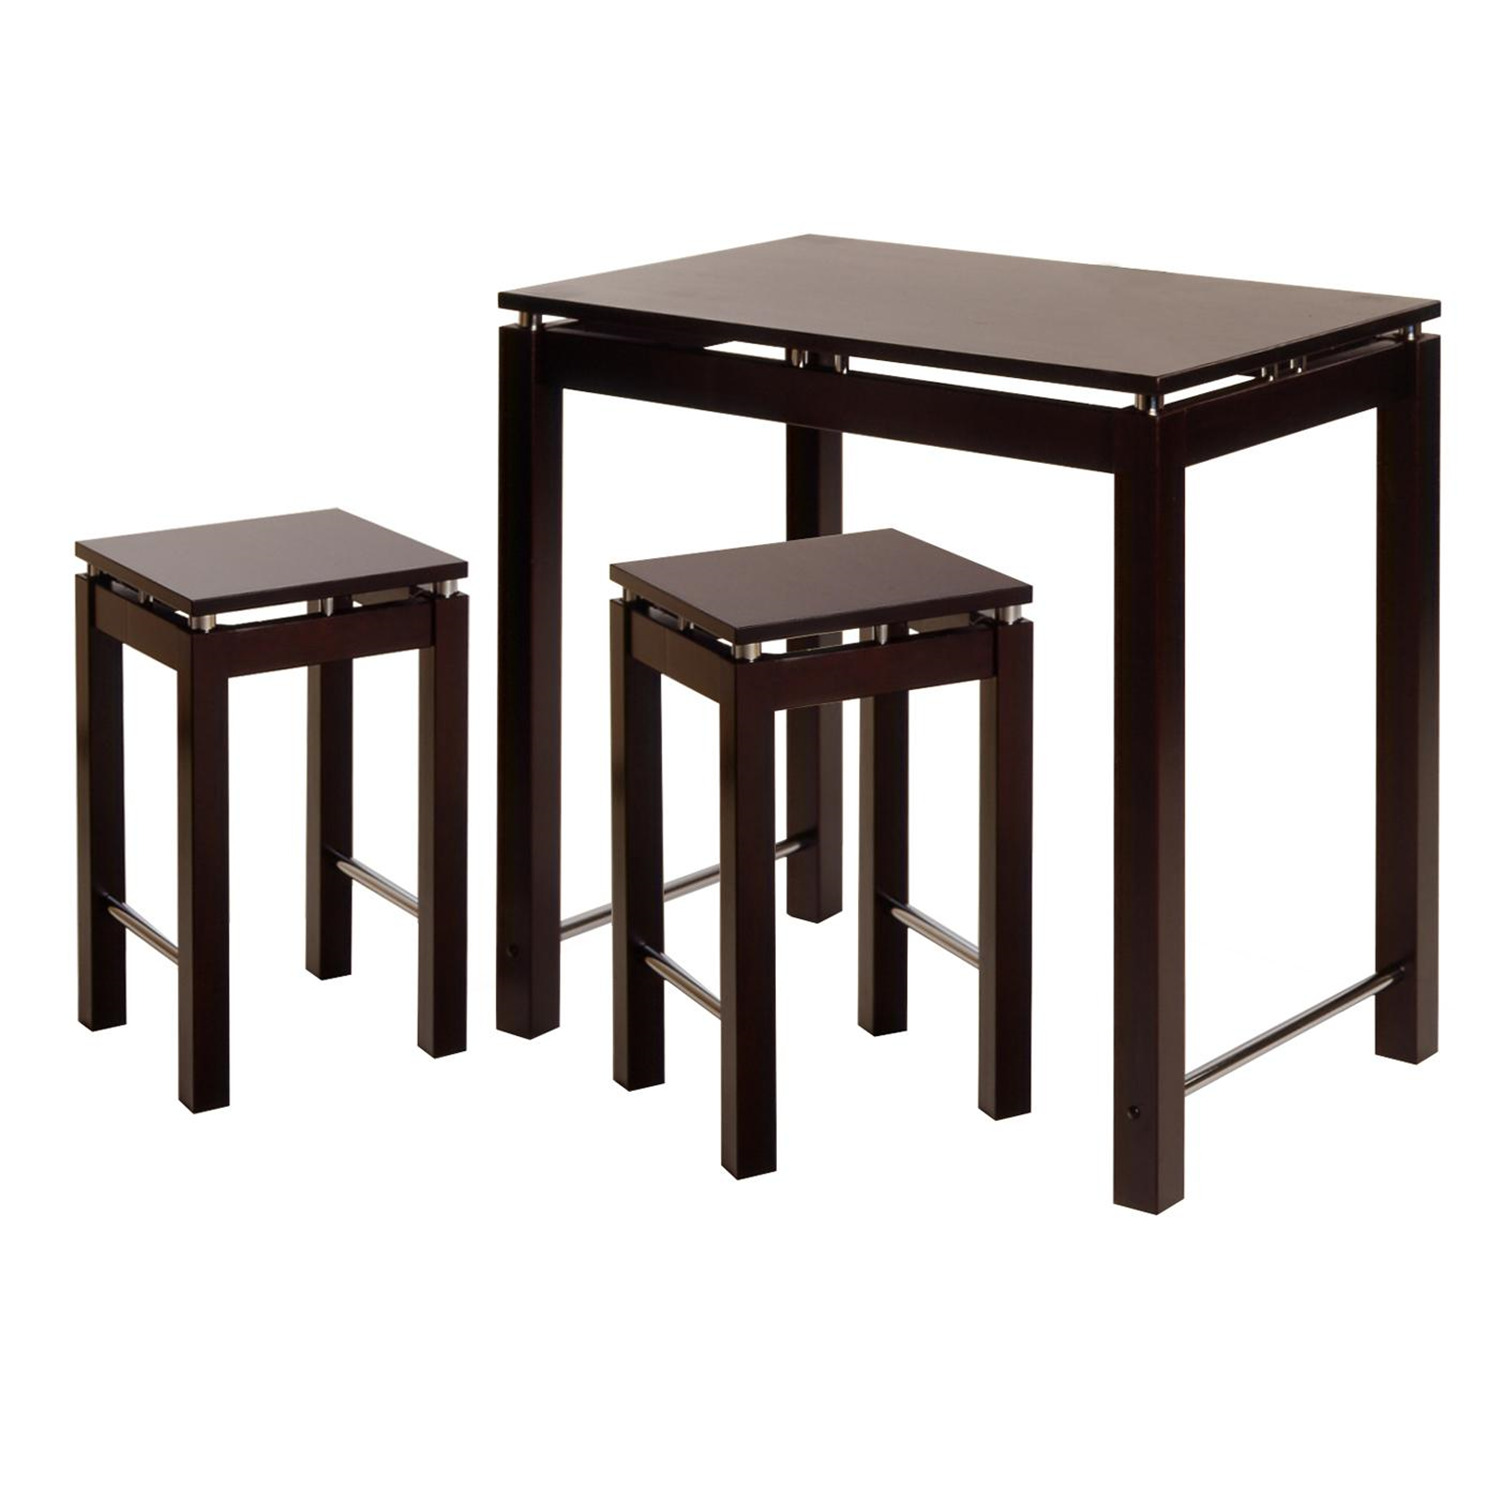 Winsome linea 3pc pub kitchen set island table with 2 for Kitchen table and stools set